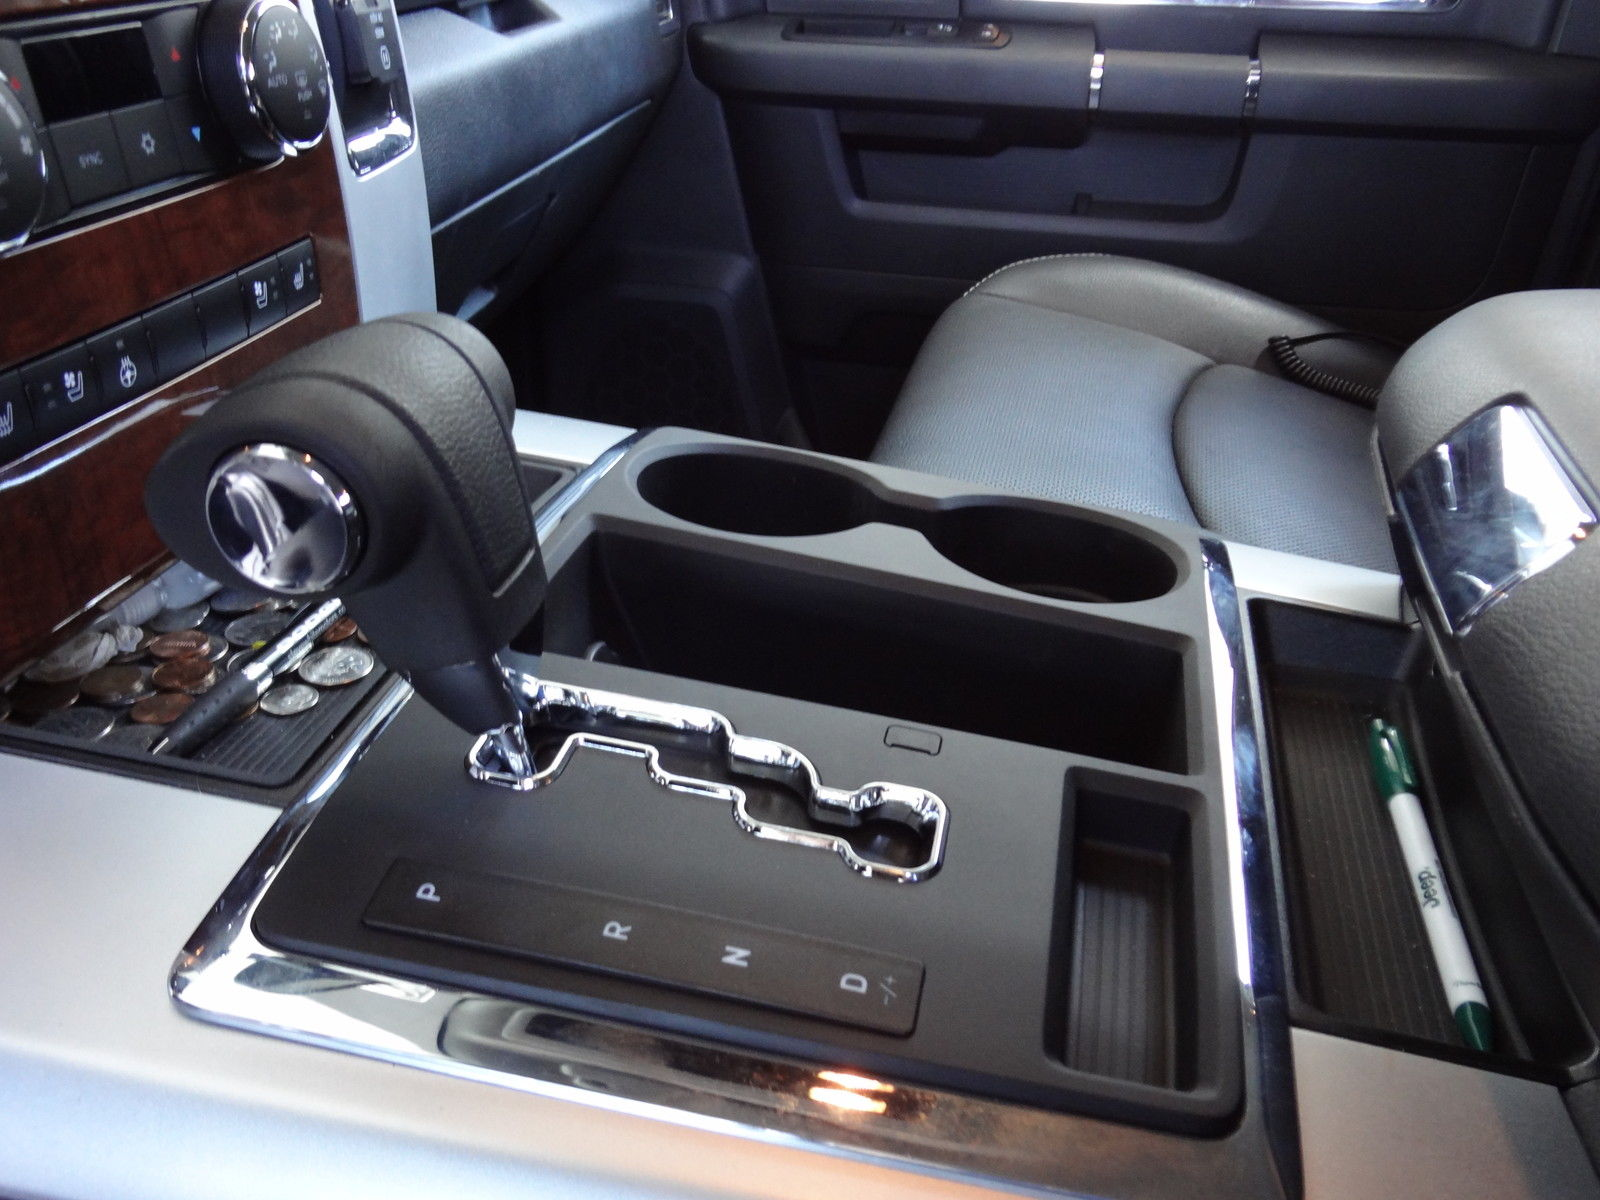 2010-2012 DODGE RAM 68RFE CENTER CONSOLE SHIFTER CONVERSION